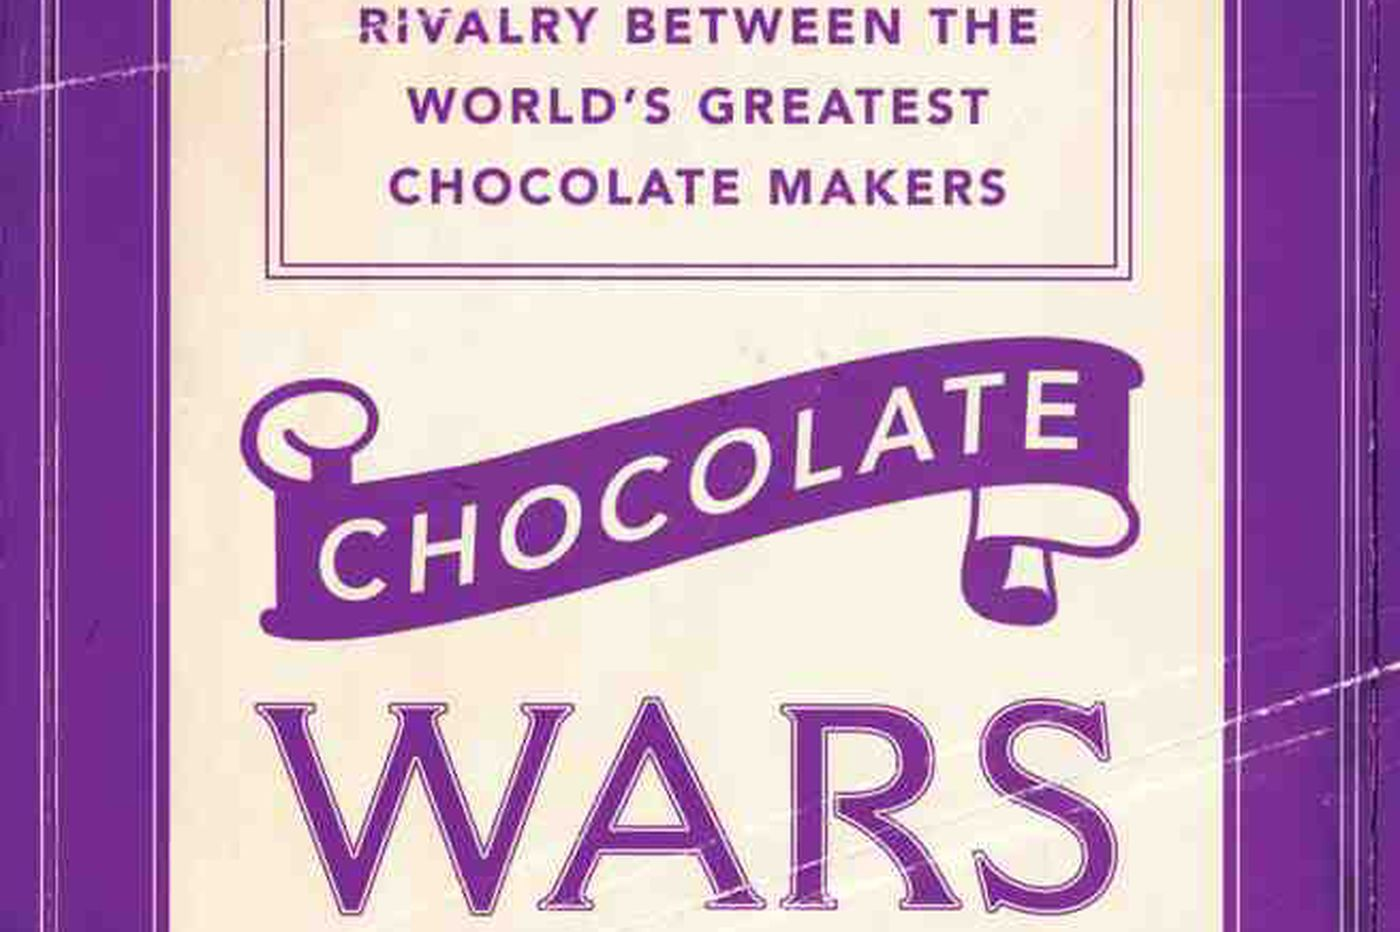 The story of the great chocolatiers